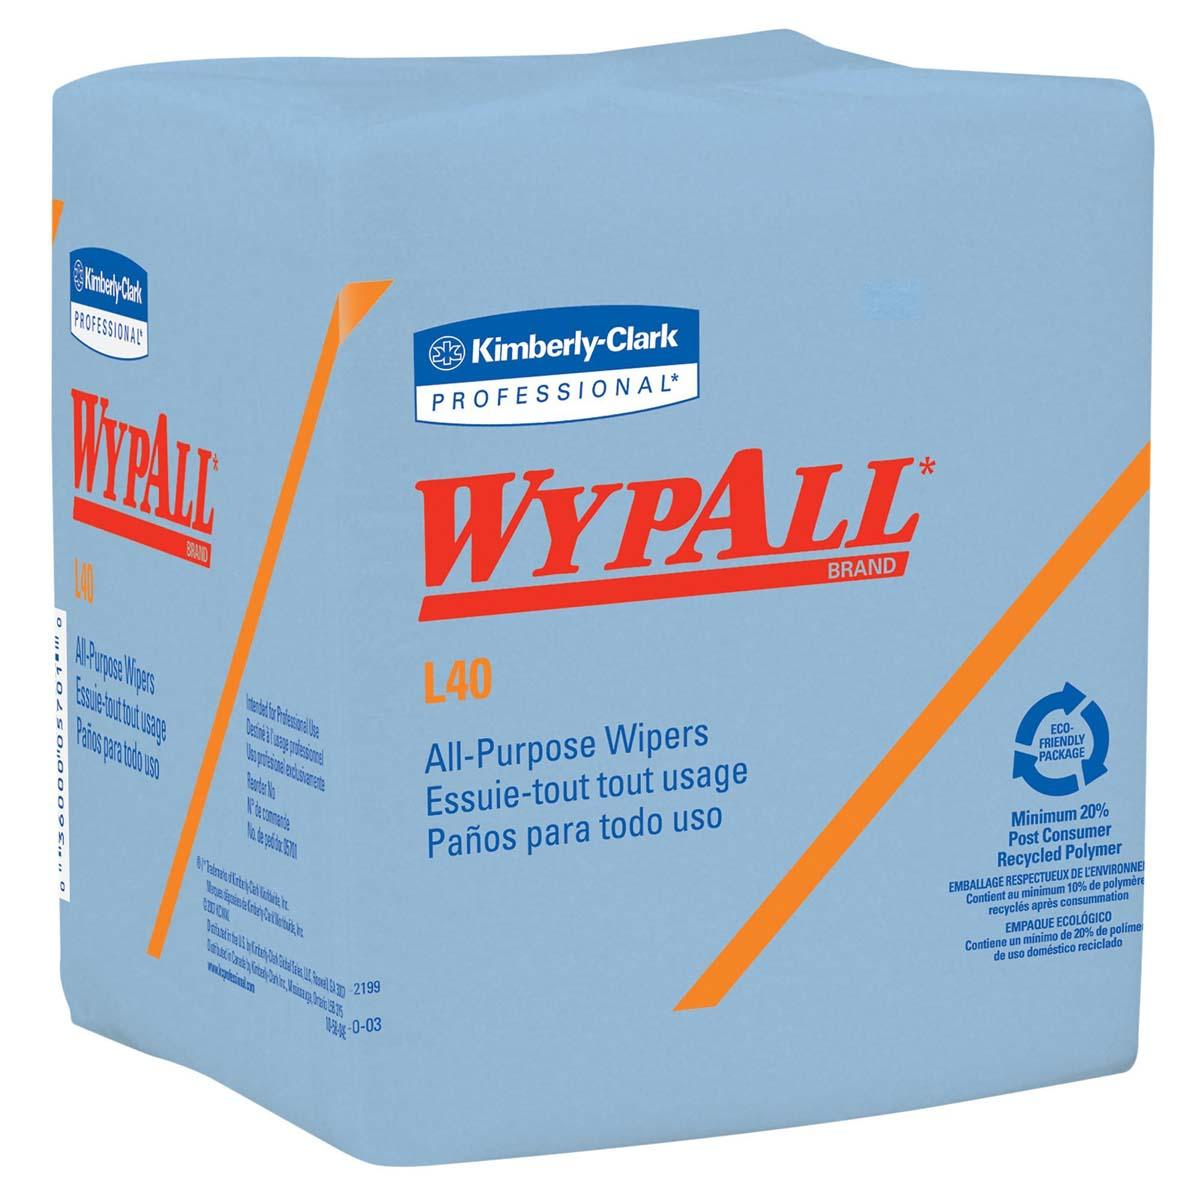 WypAll L40 Disposable Cleaning and Drying Towels (05776), Limited Use Wipers, Blue, 12 Packs per Case, 56 Sheets per Pack, 672 Sheets Total